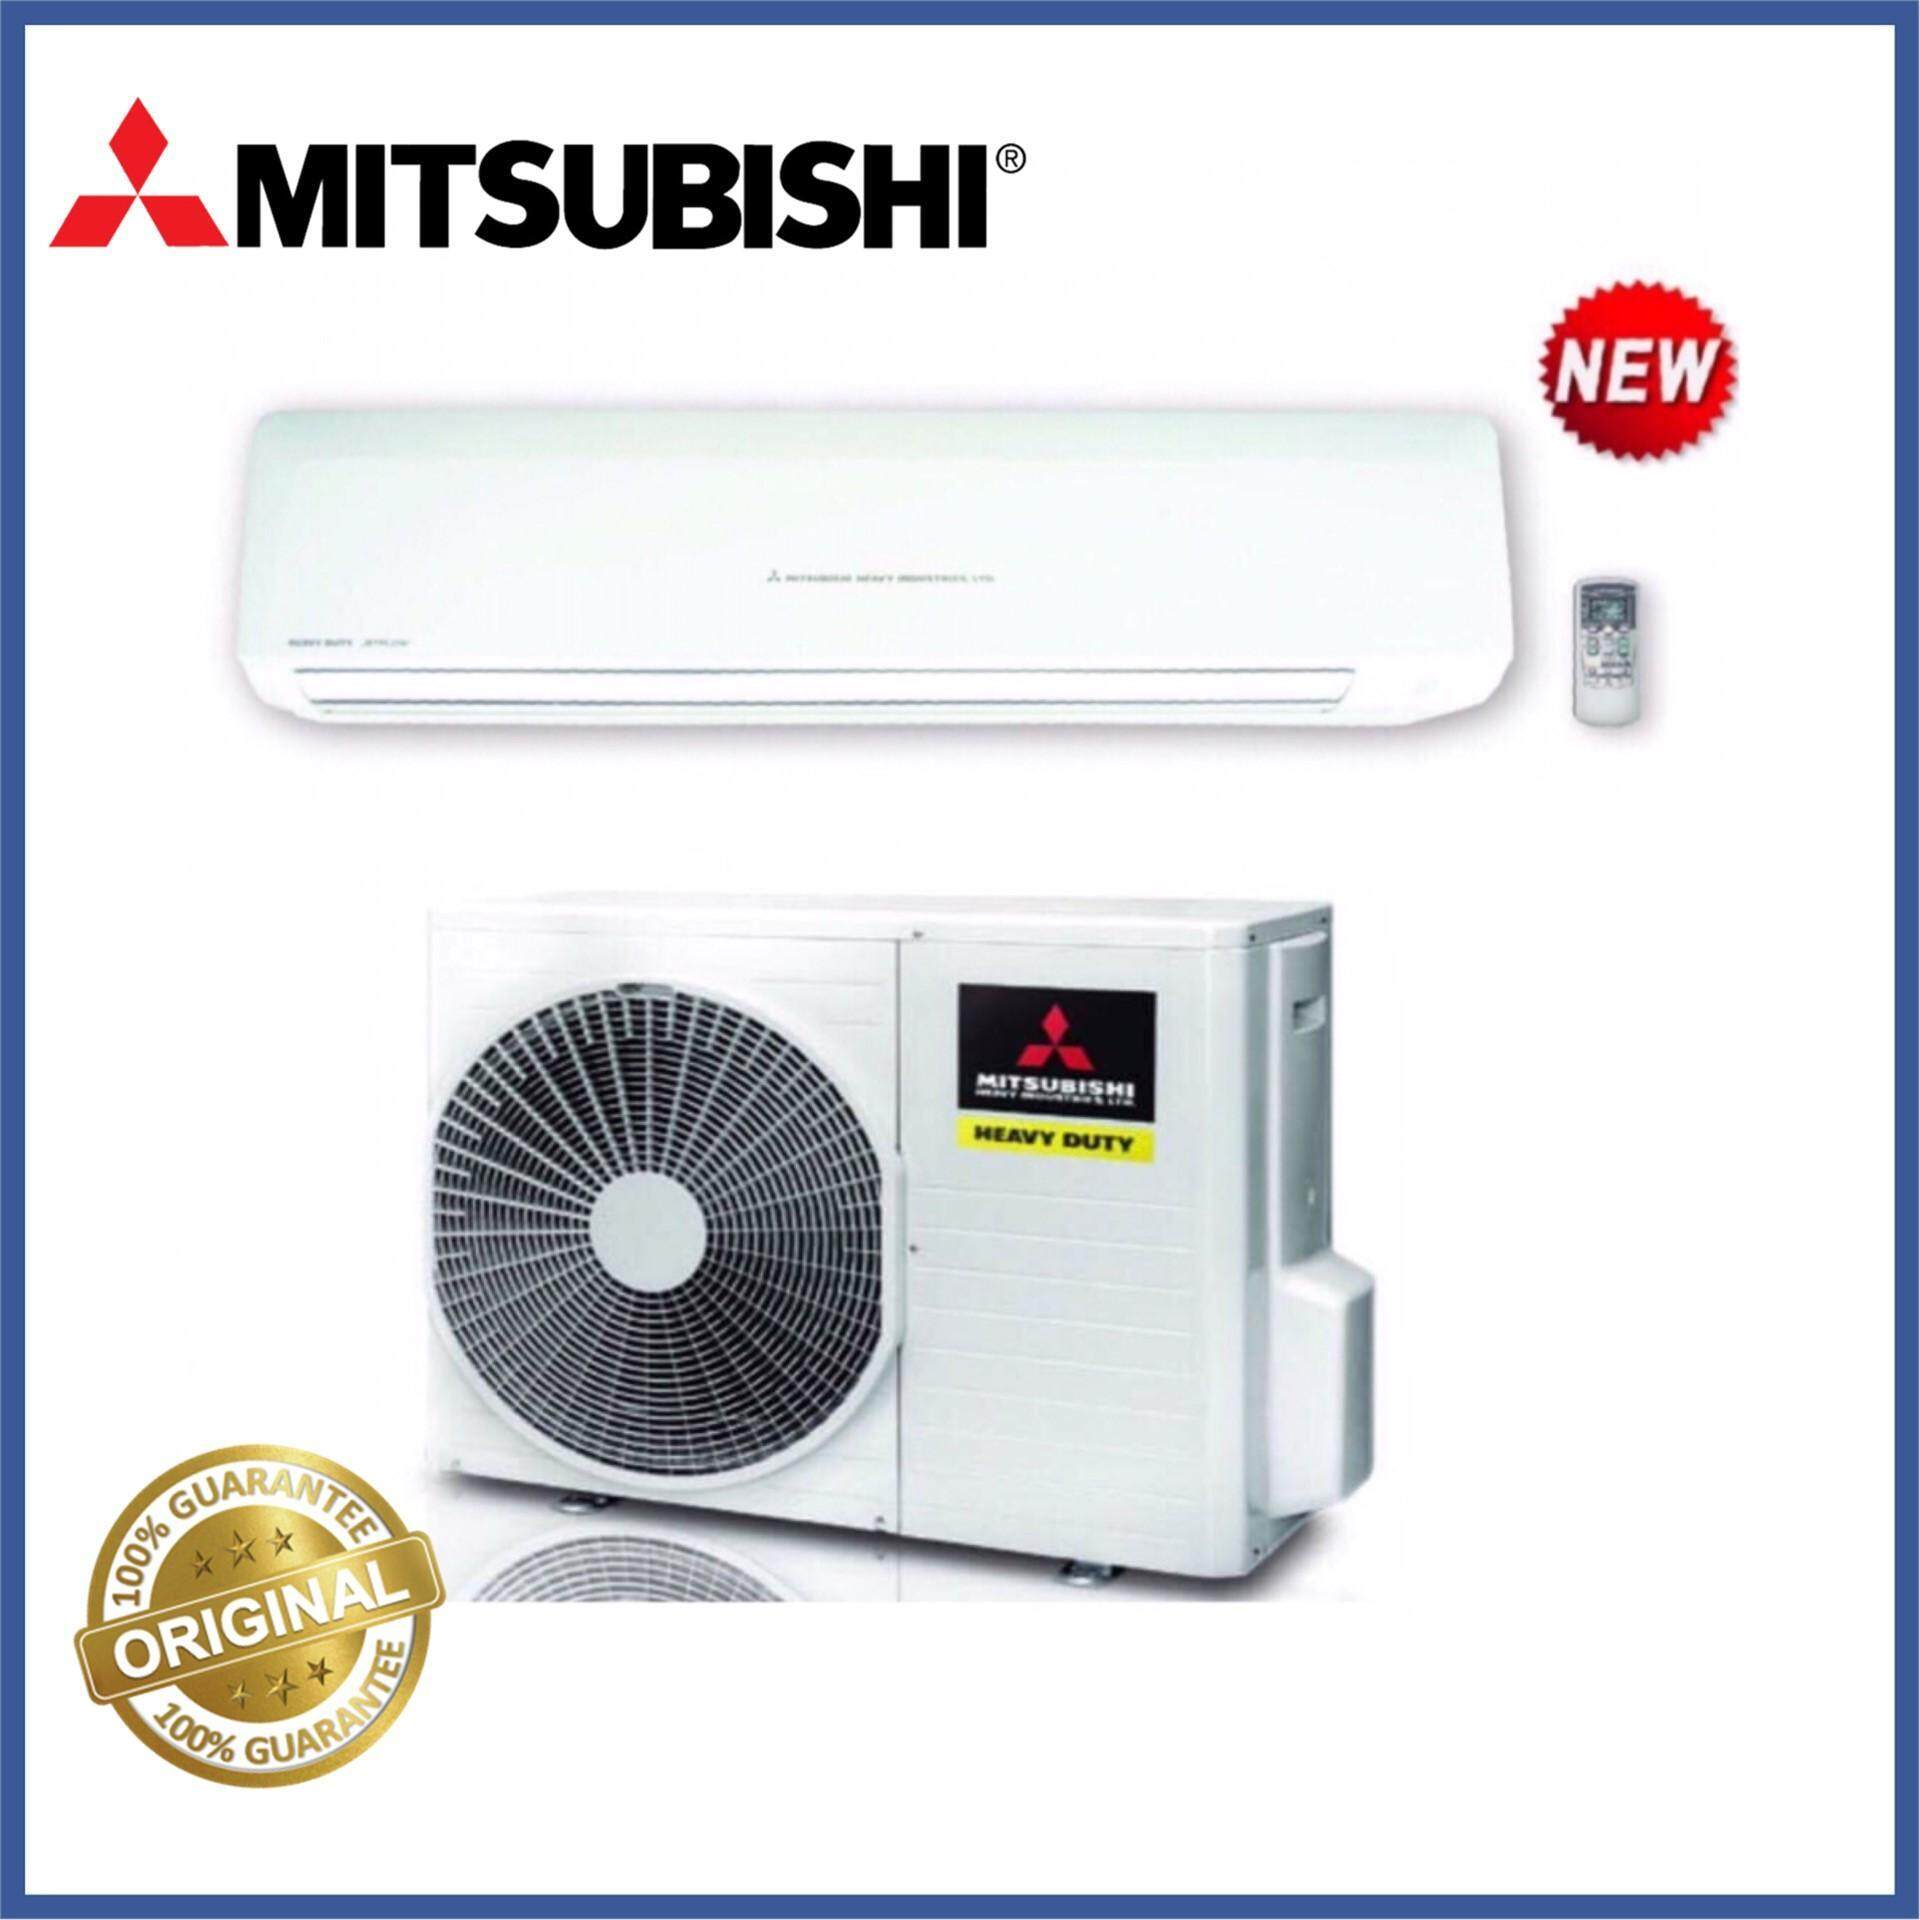 Mitsubishi SRC19CSS 2.0 Eco-Friendly Air Conditioners with Ionizer